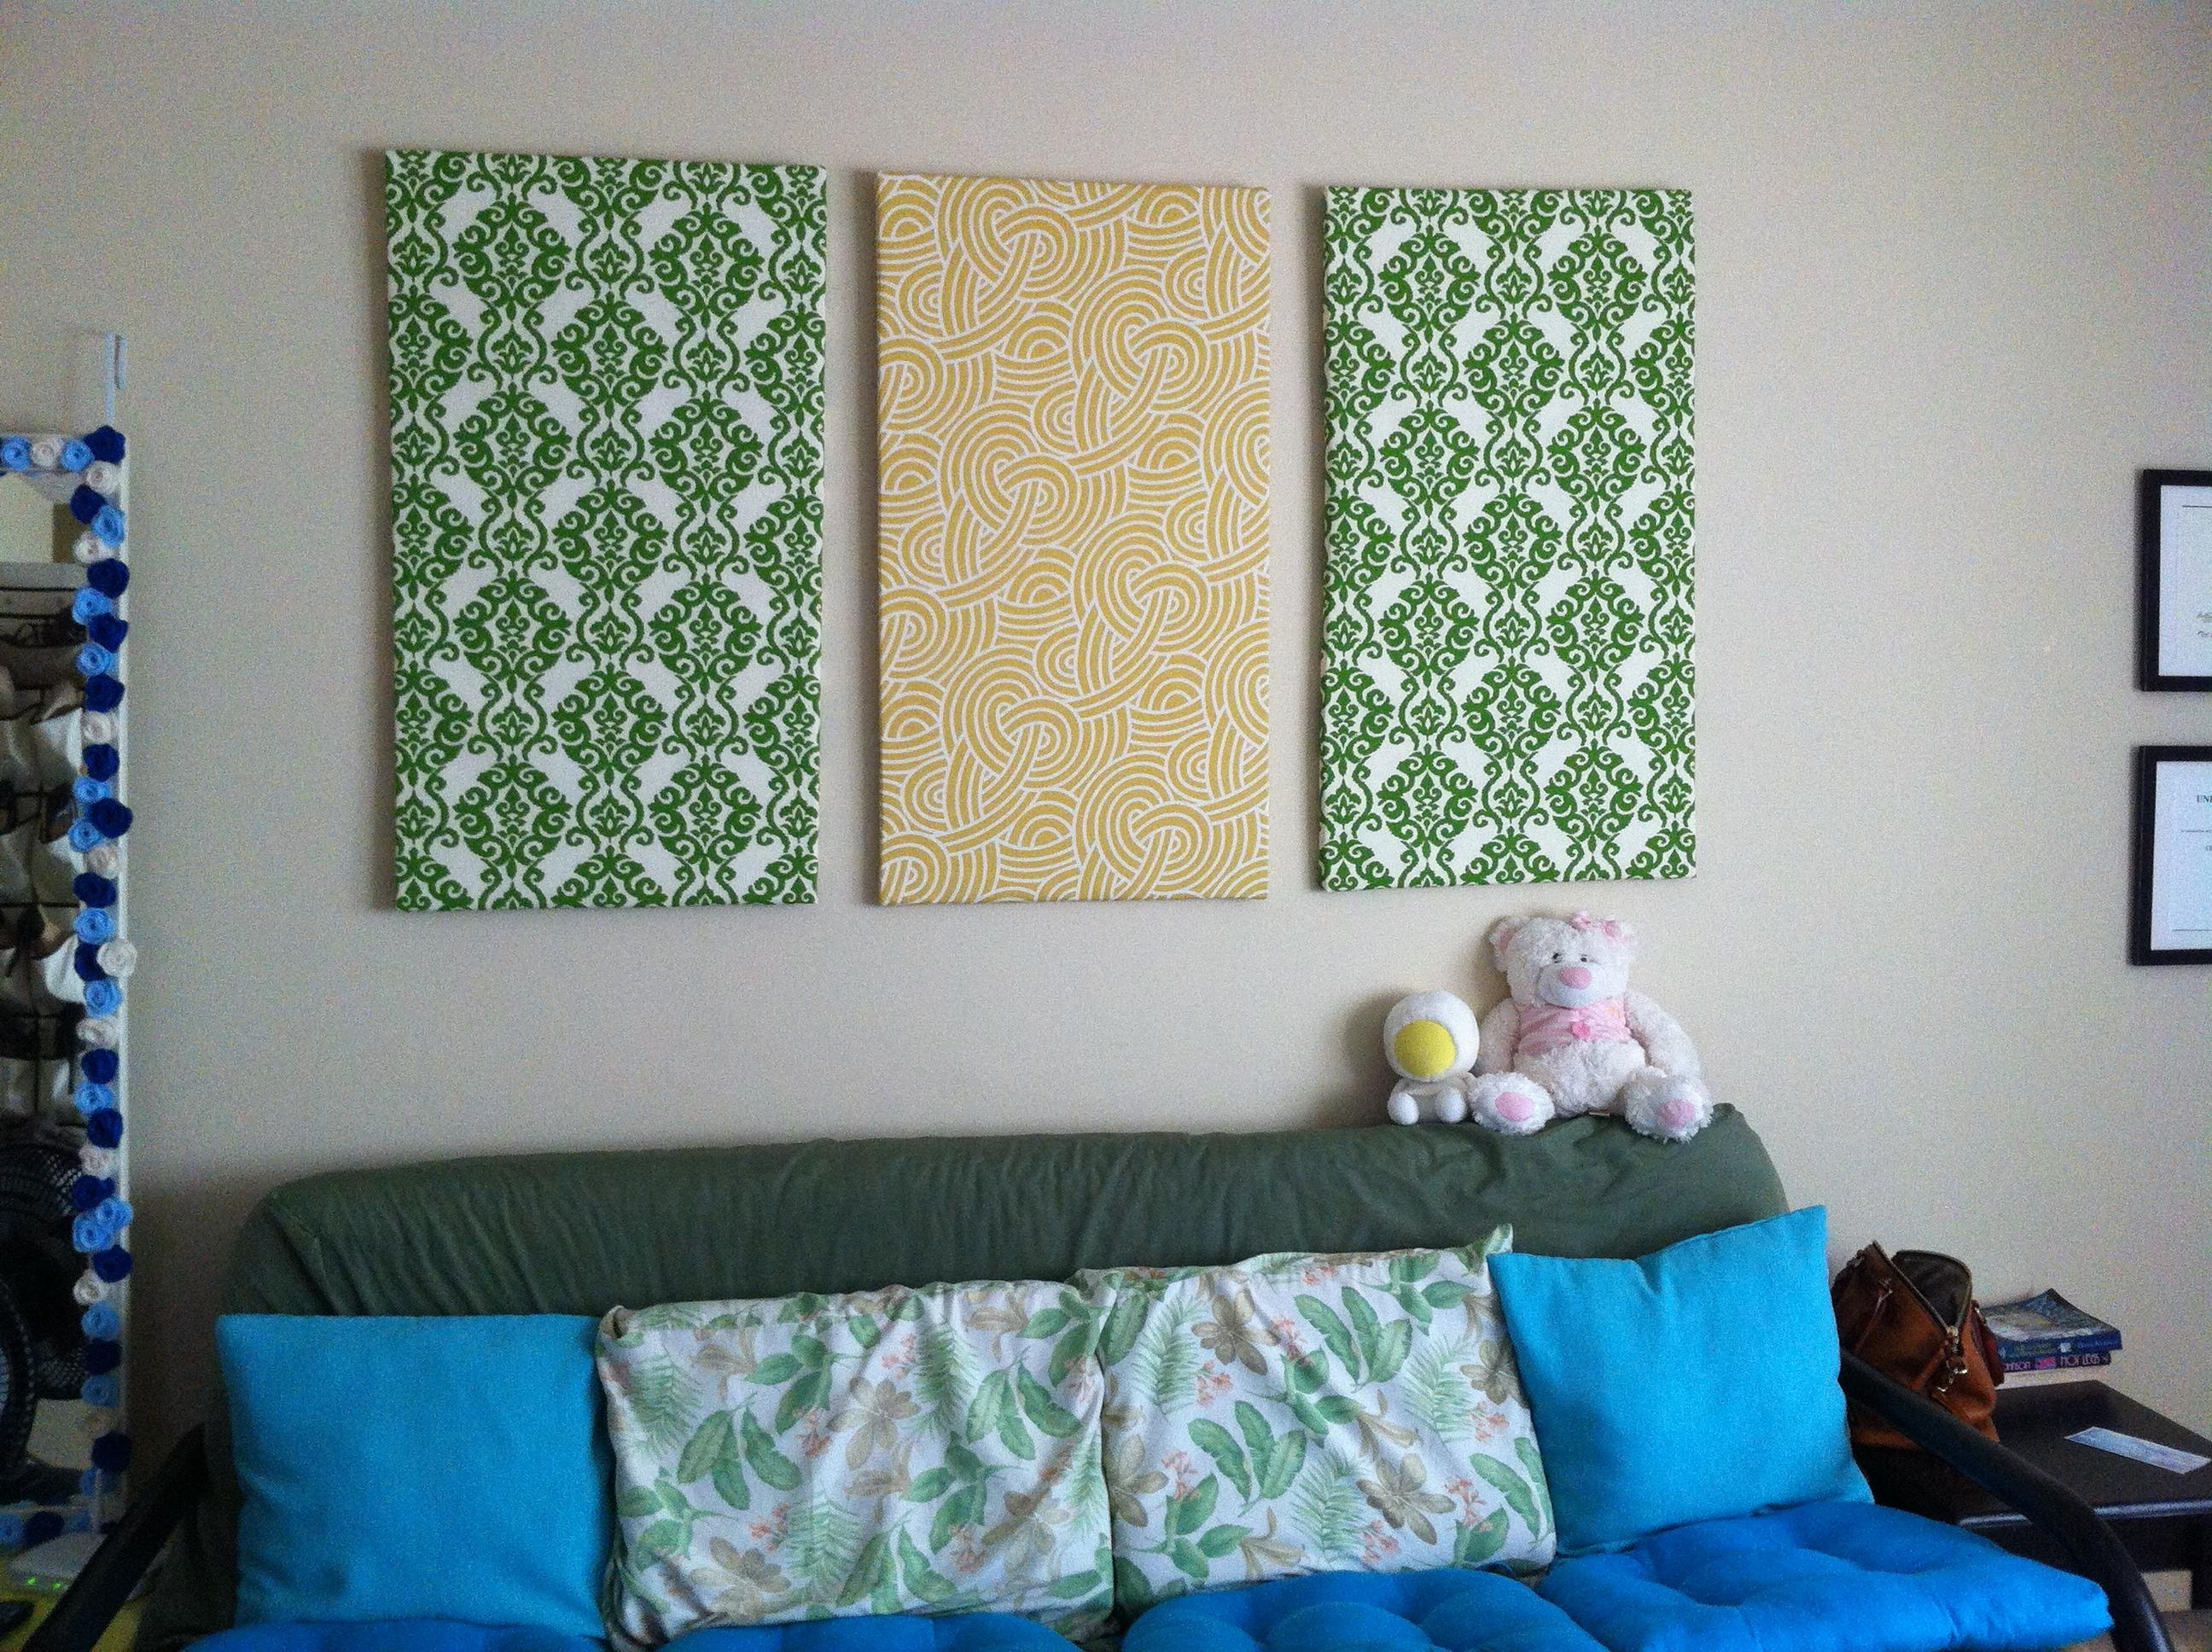 Diy Fabric Wall Art | Crafting Is Sanity Intended For Fabric Canvas Wall Art (View 19 of 20)